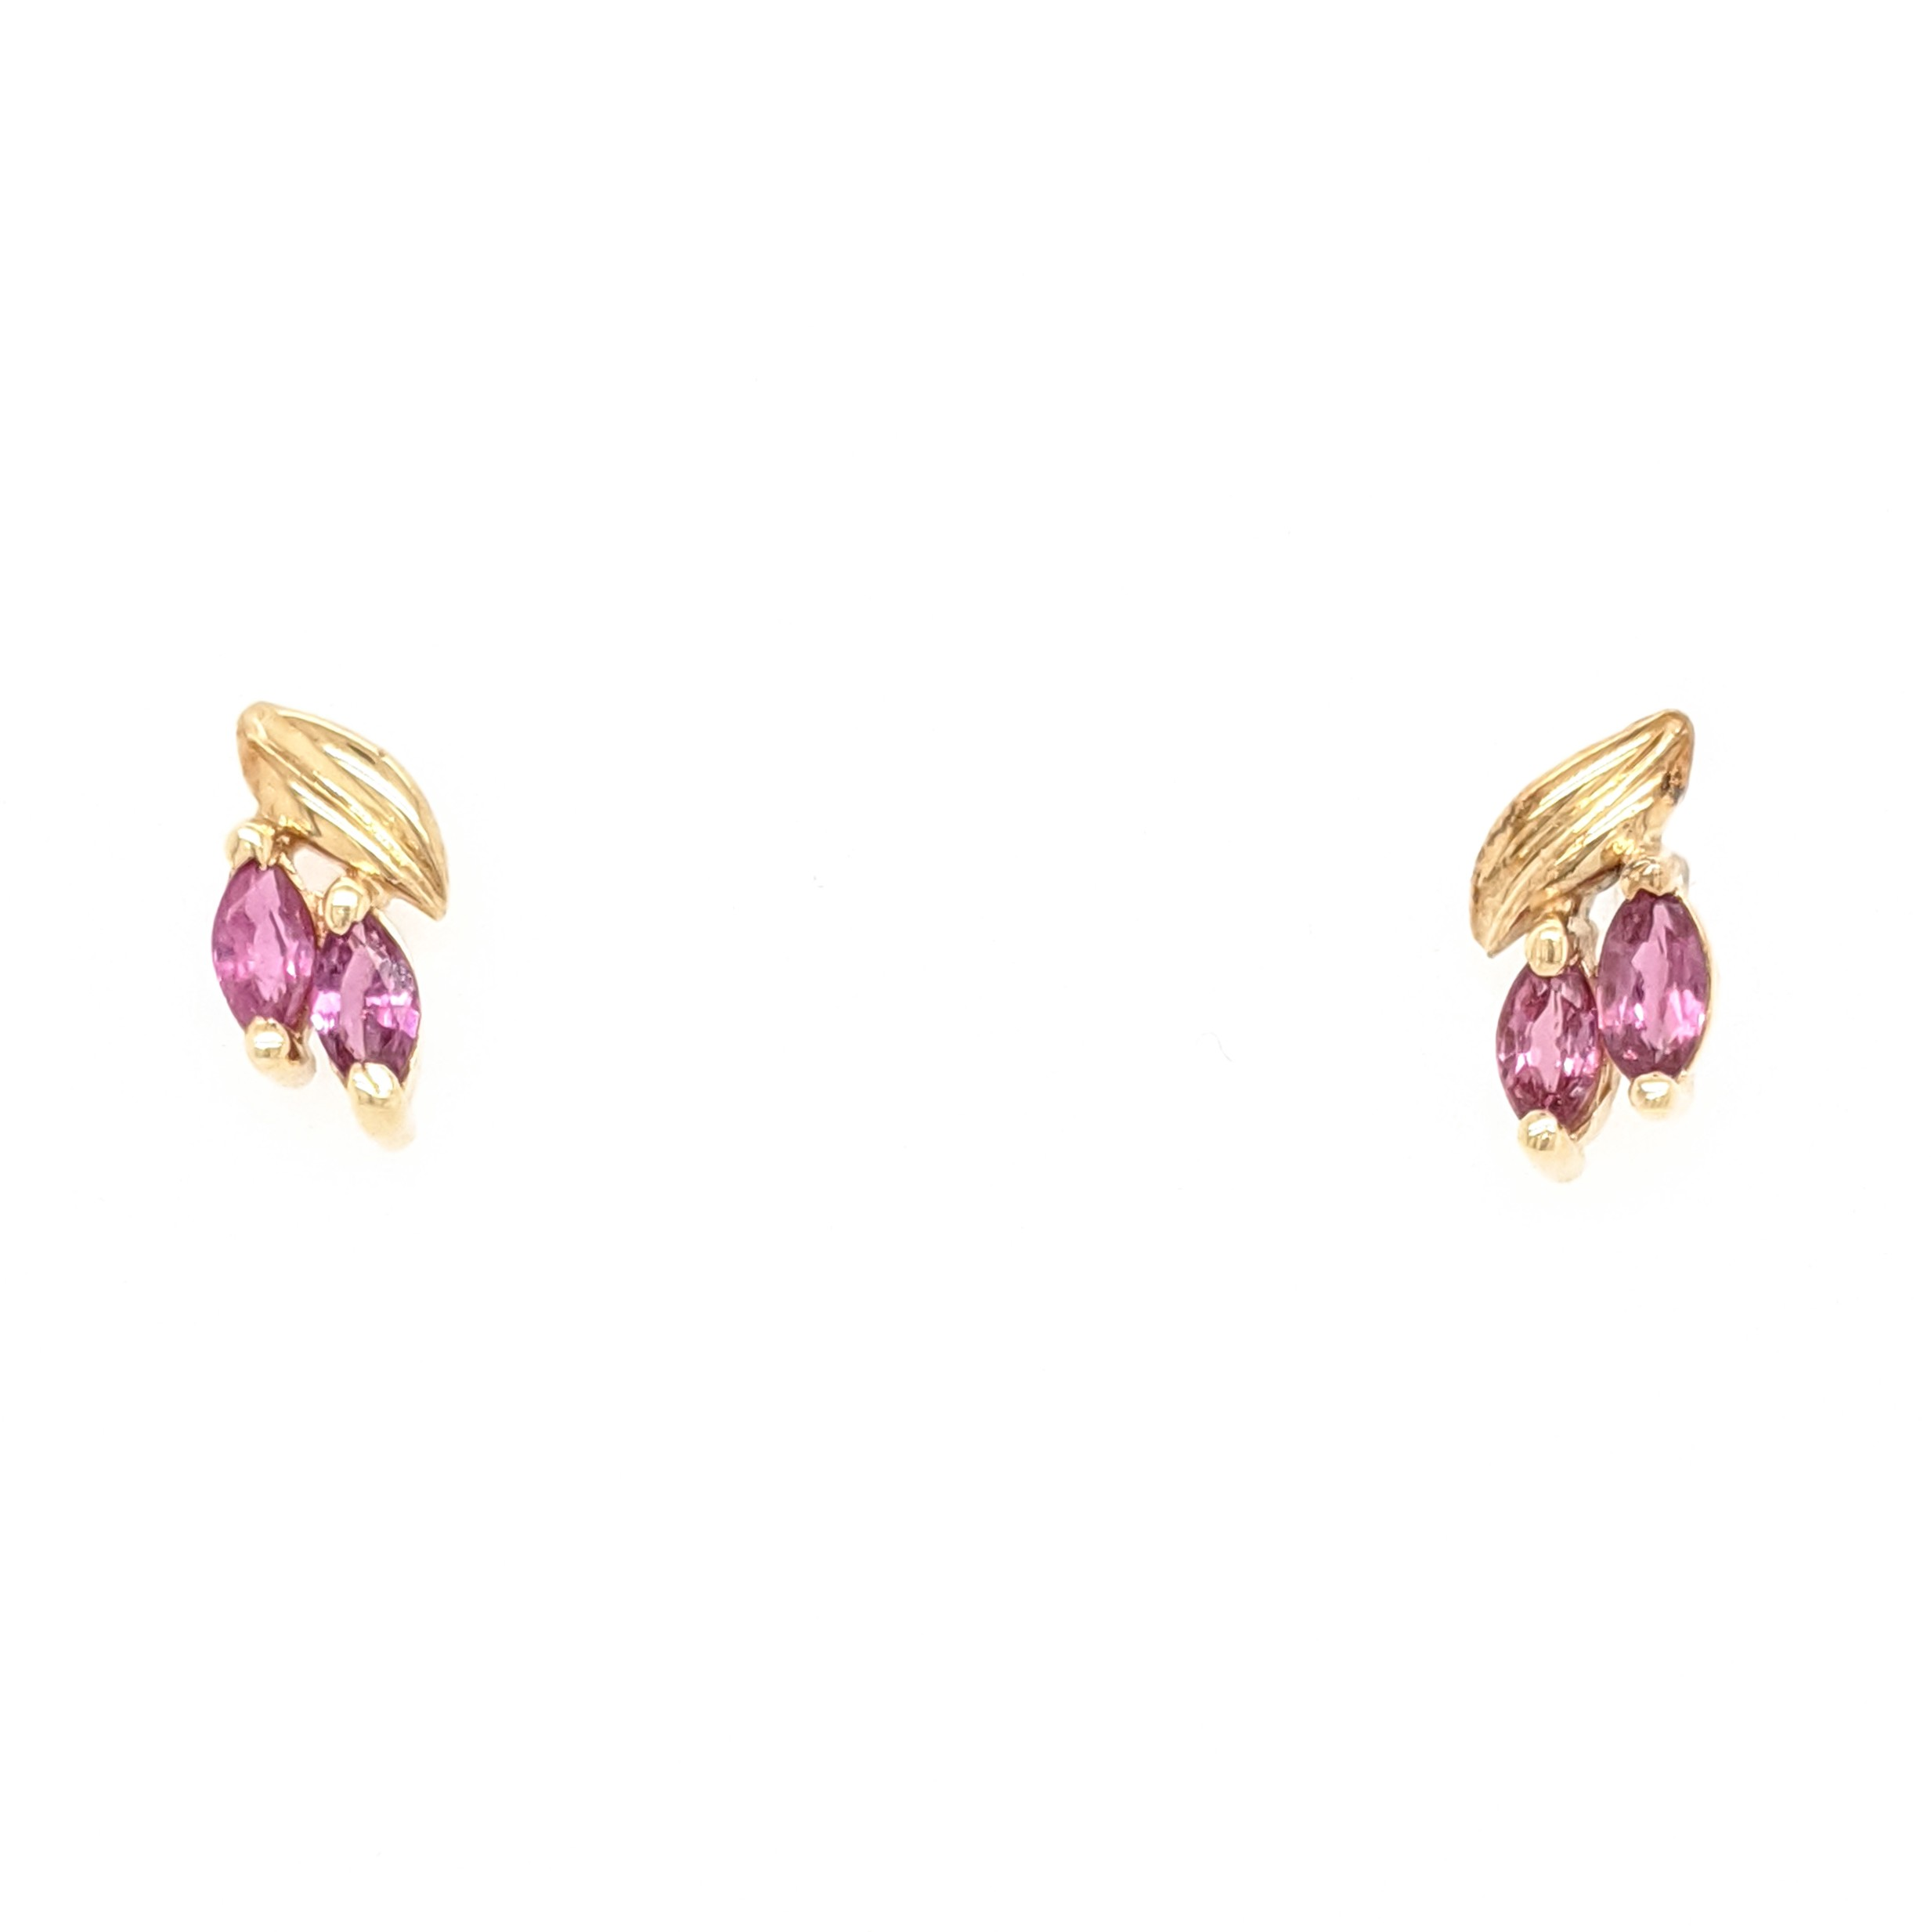 Marquise Ruby Stud Earrings